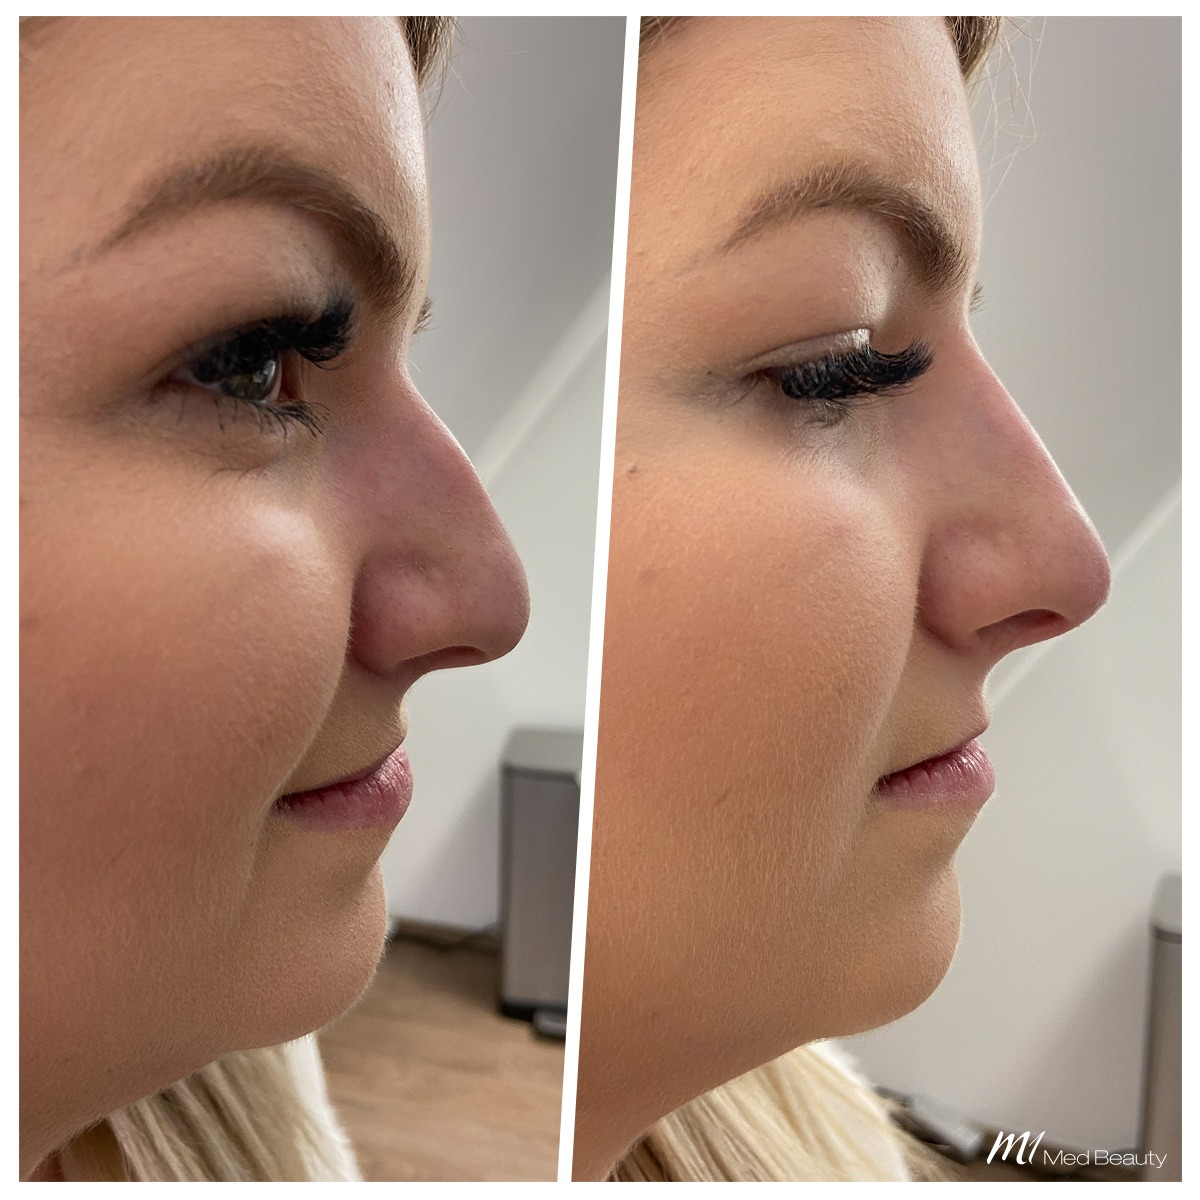 non-surgical rhinoplasty_before after result_m1 med beauty_02